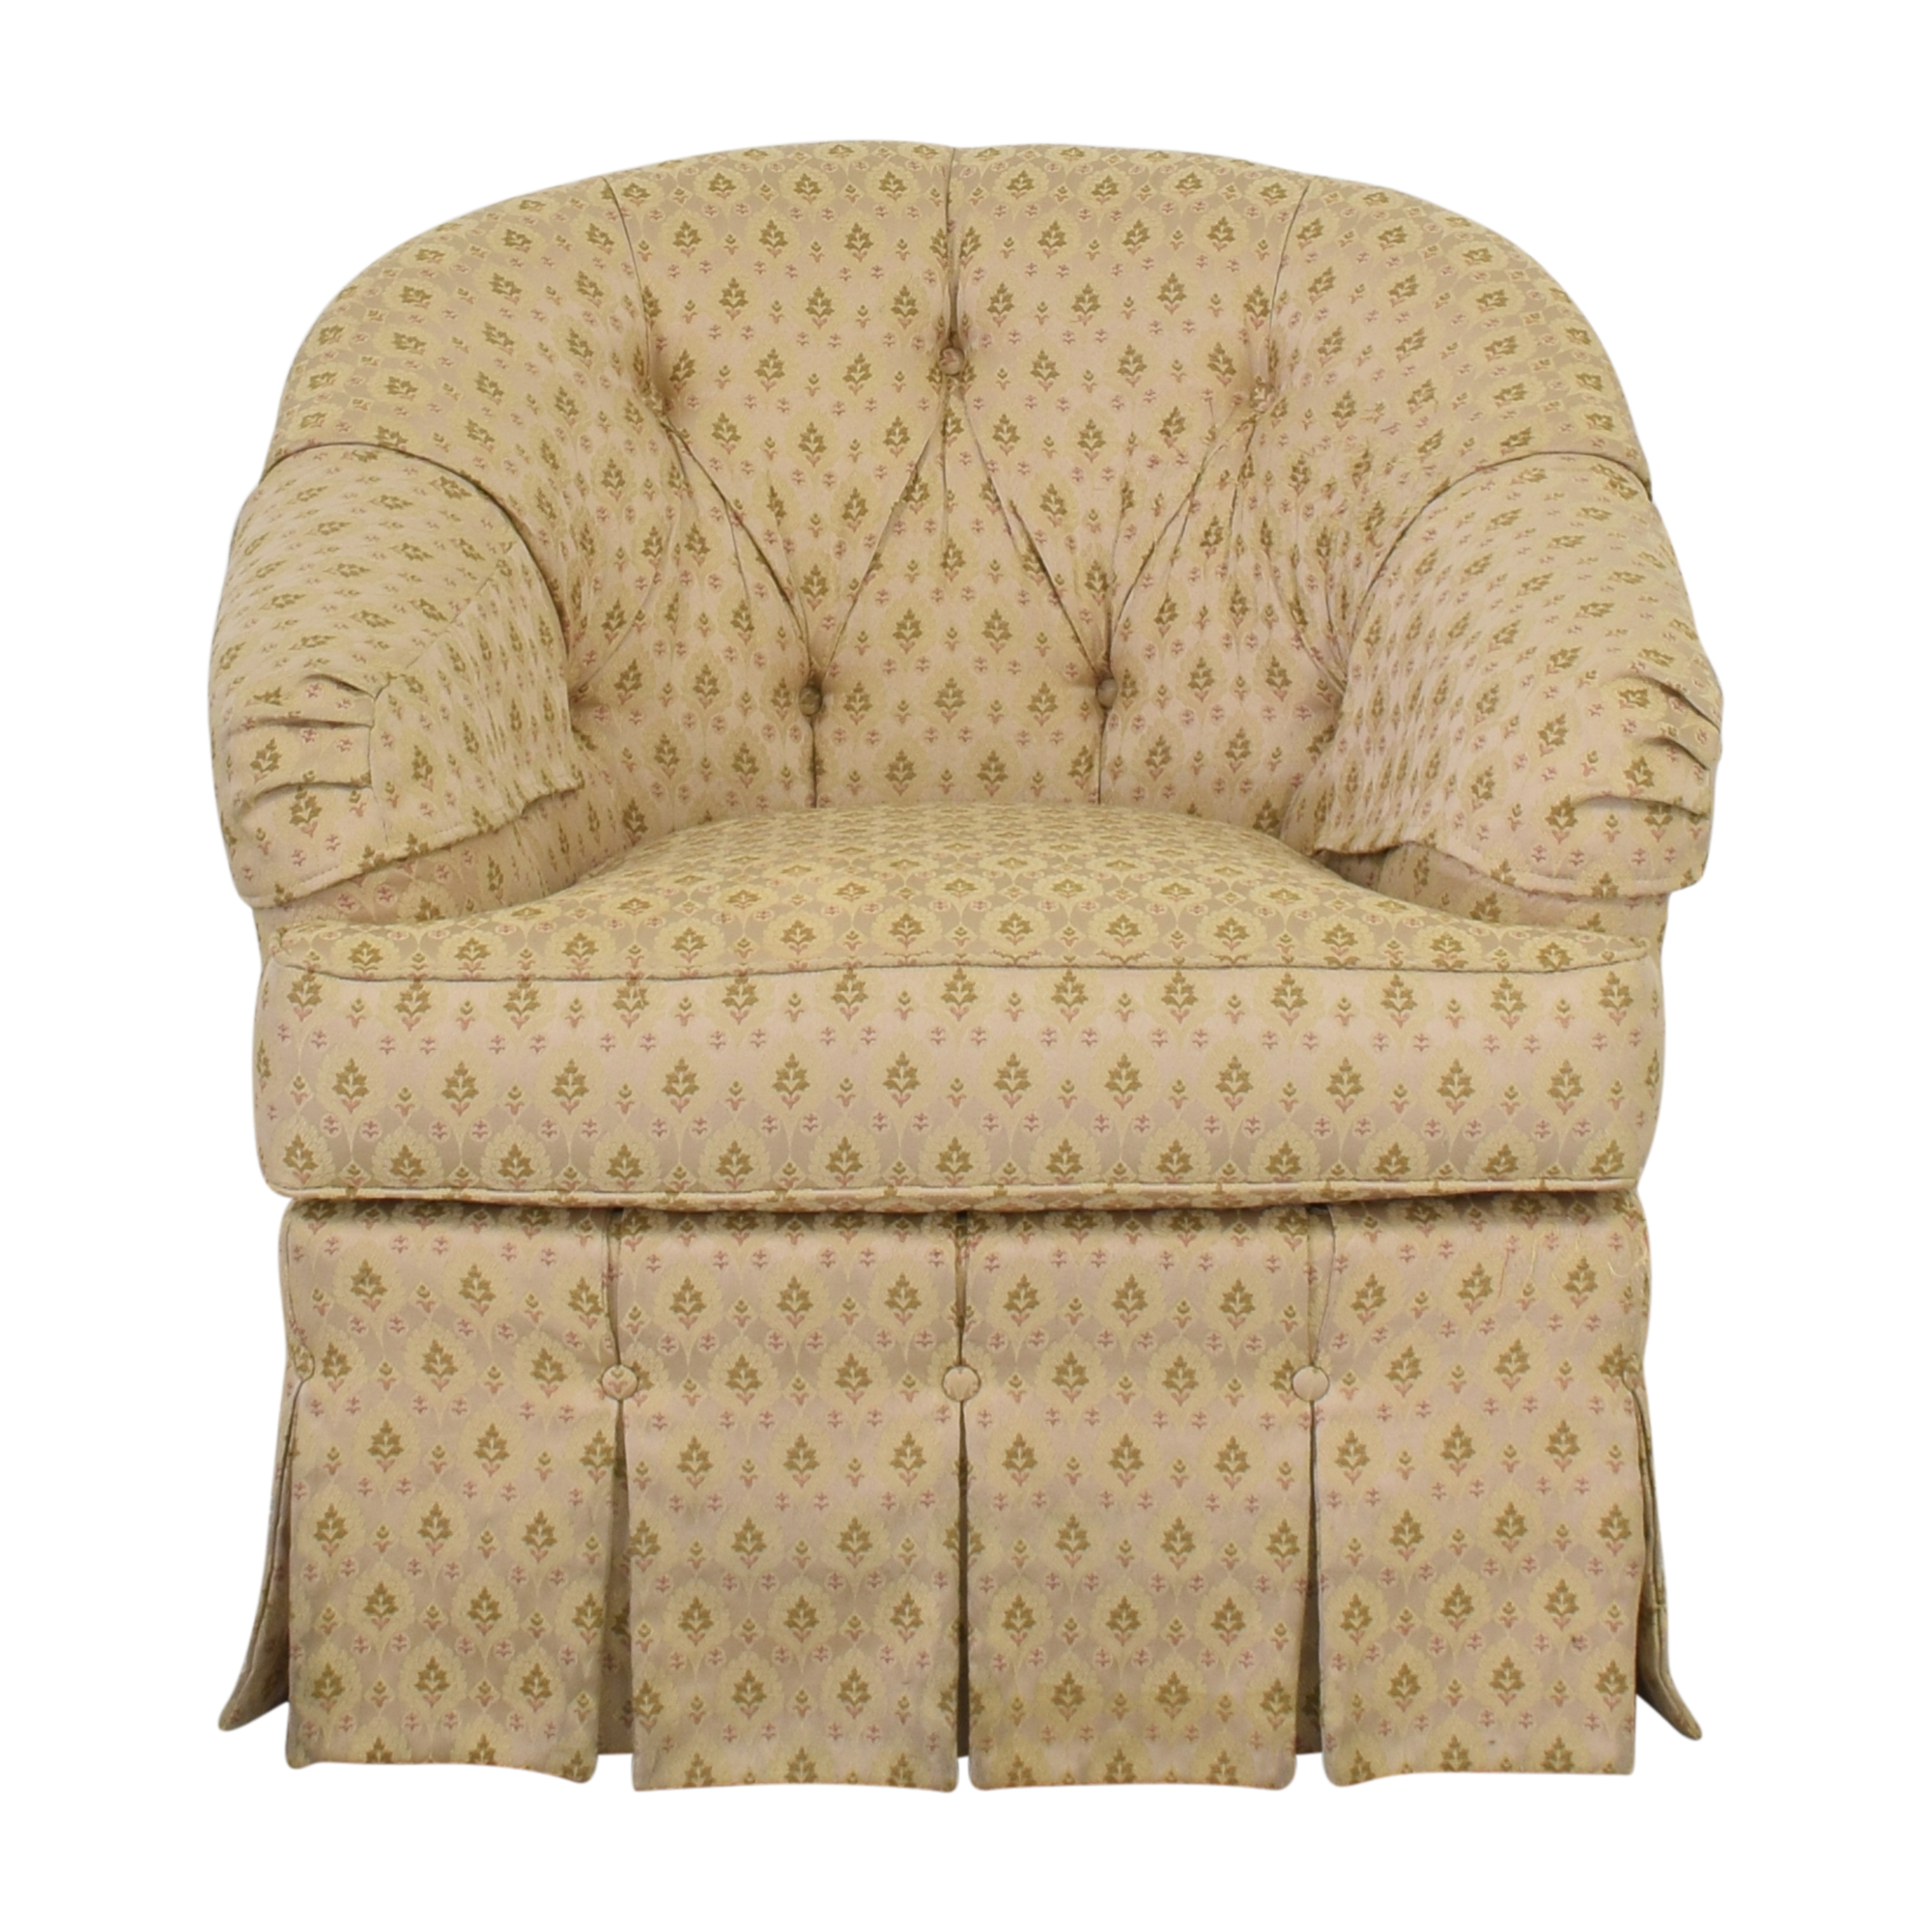 buy Ethan Allen Skirted Swivel Chair Ethan Allen